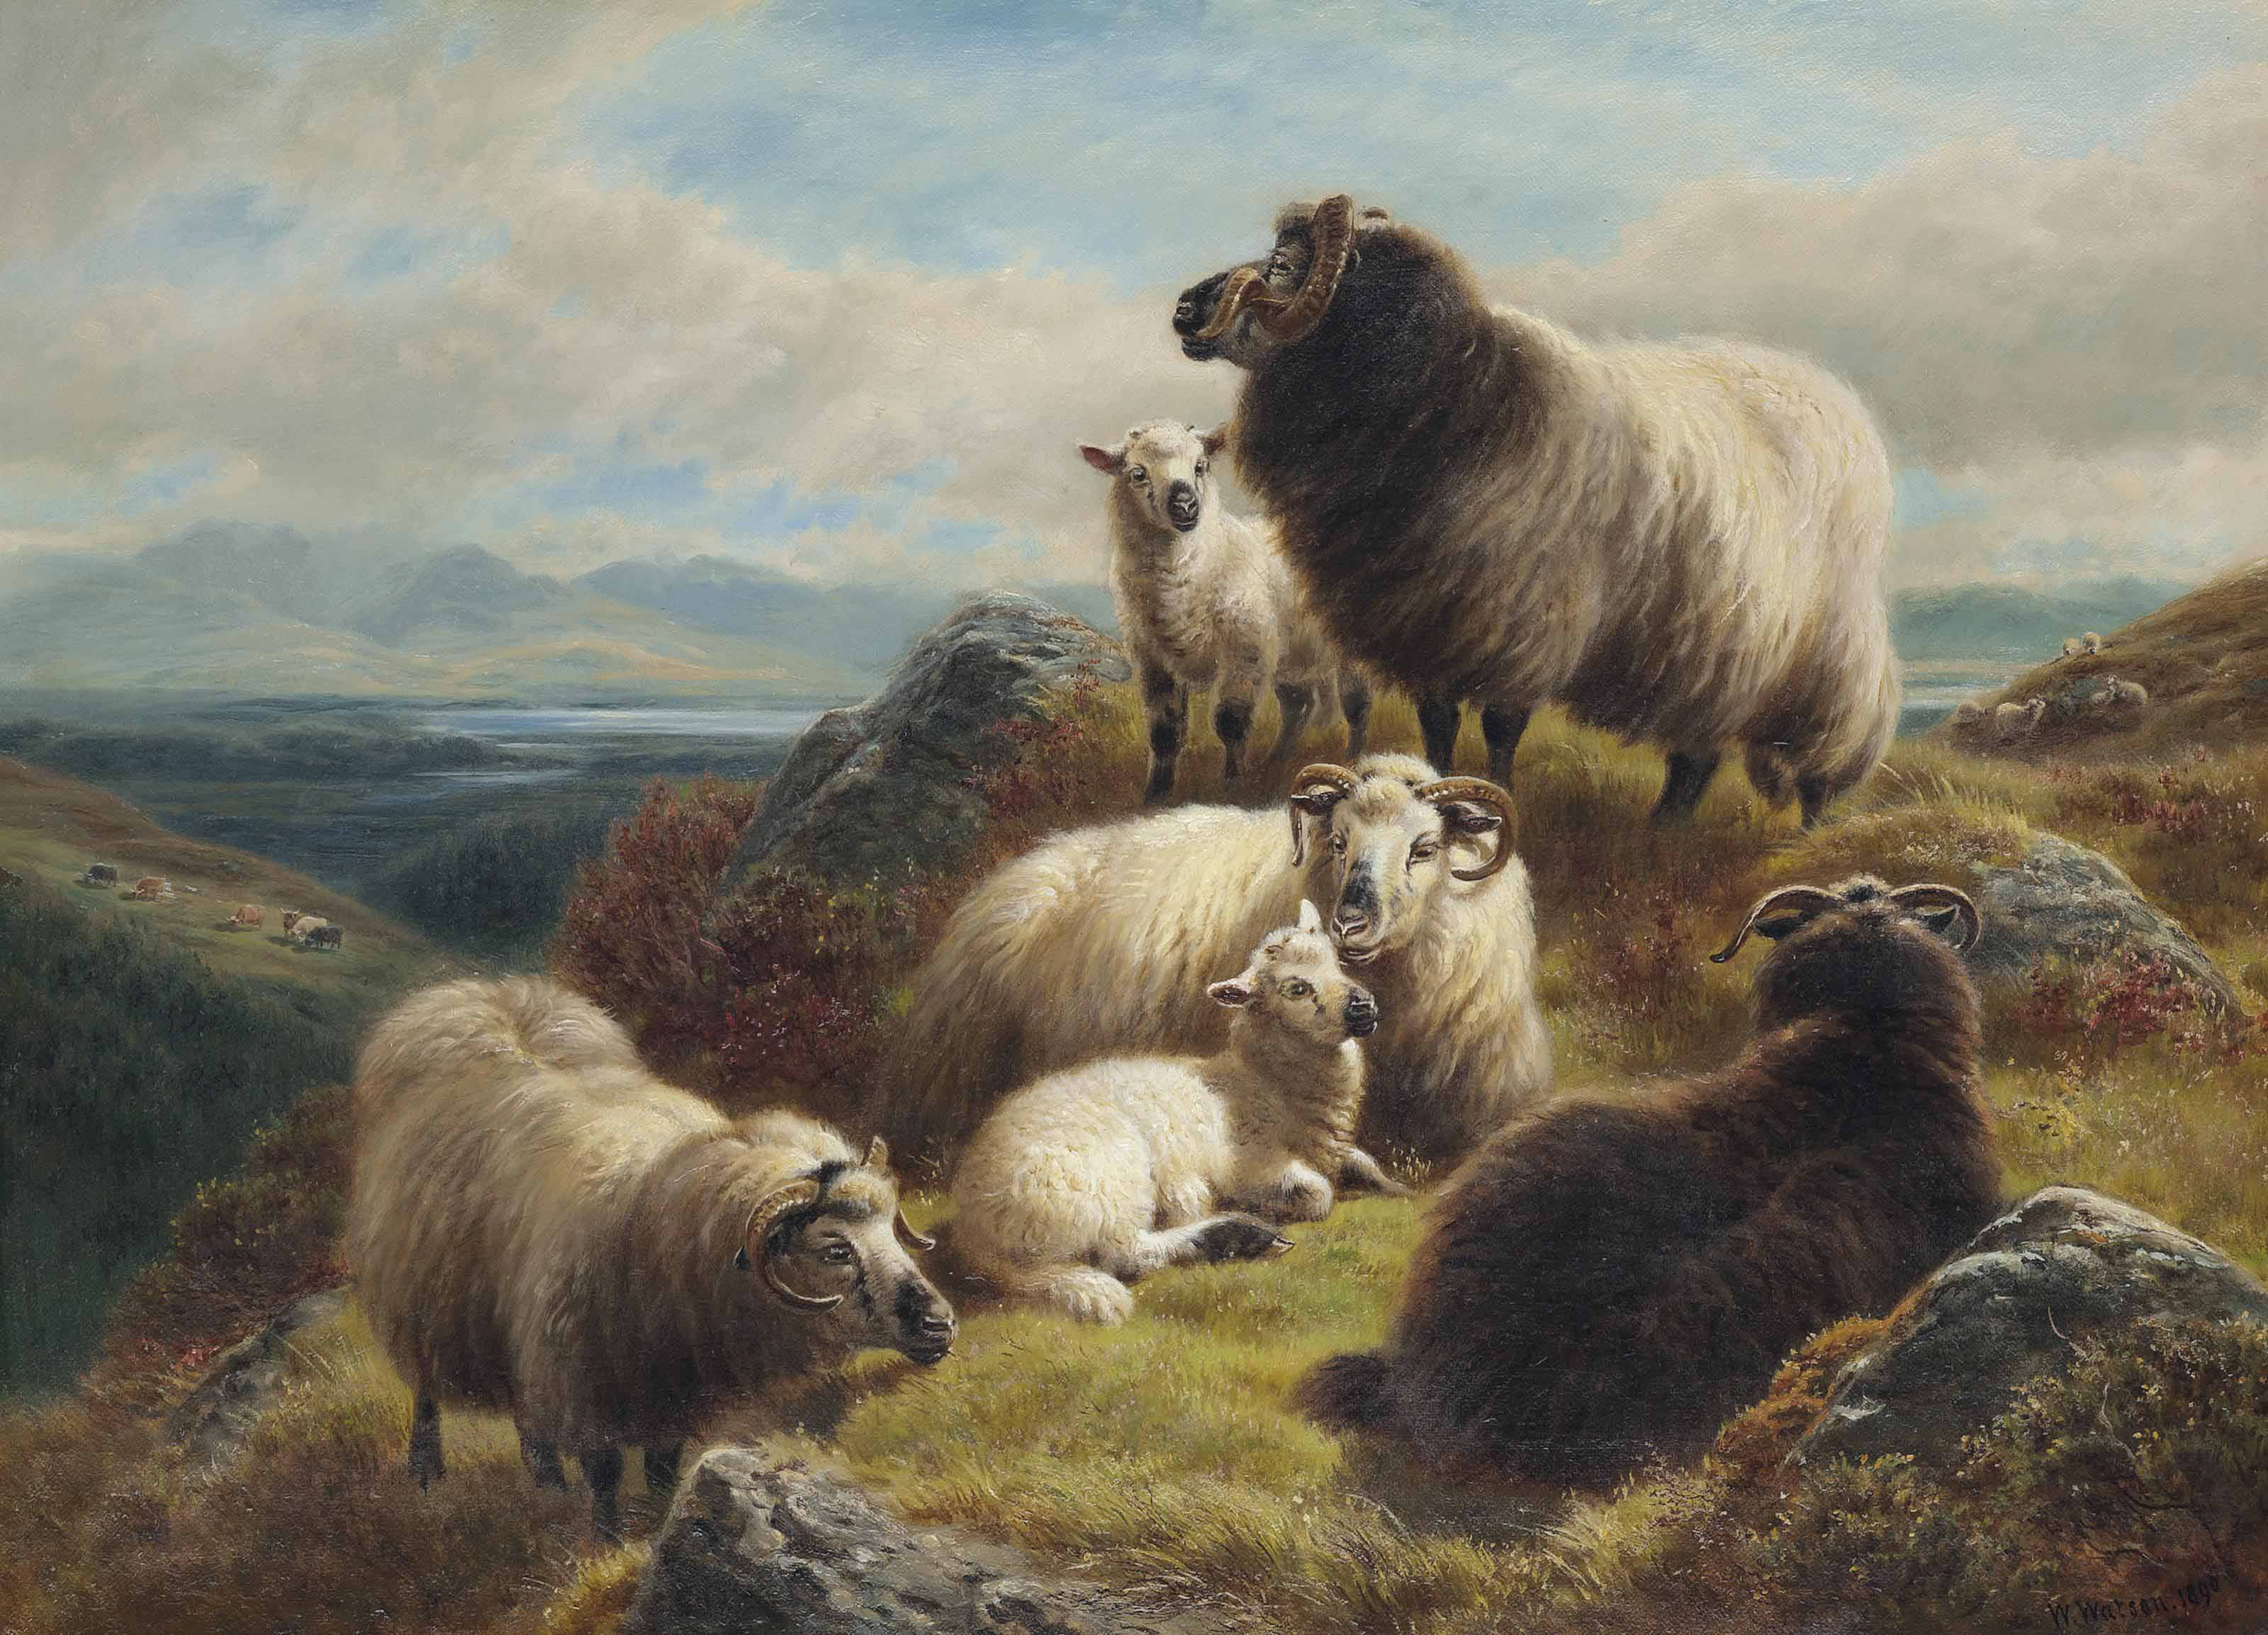 Sheep in a highland landscape